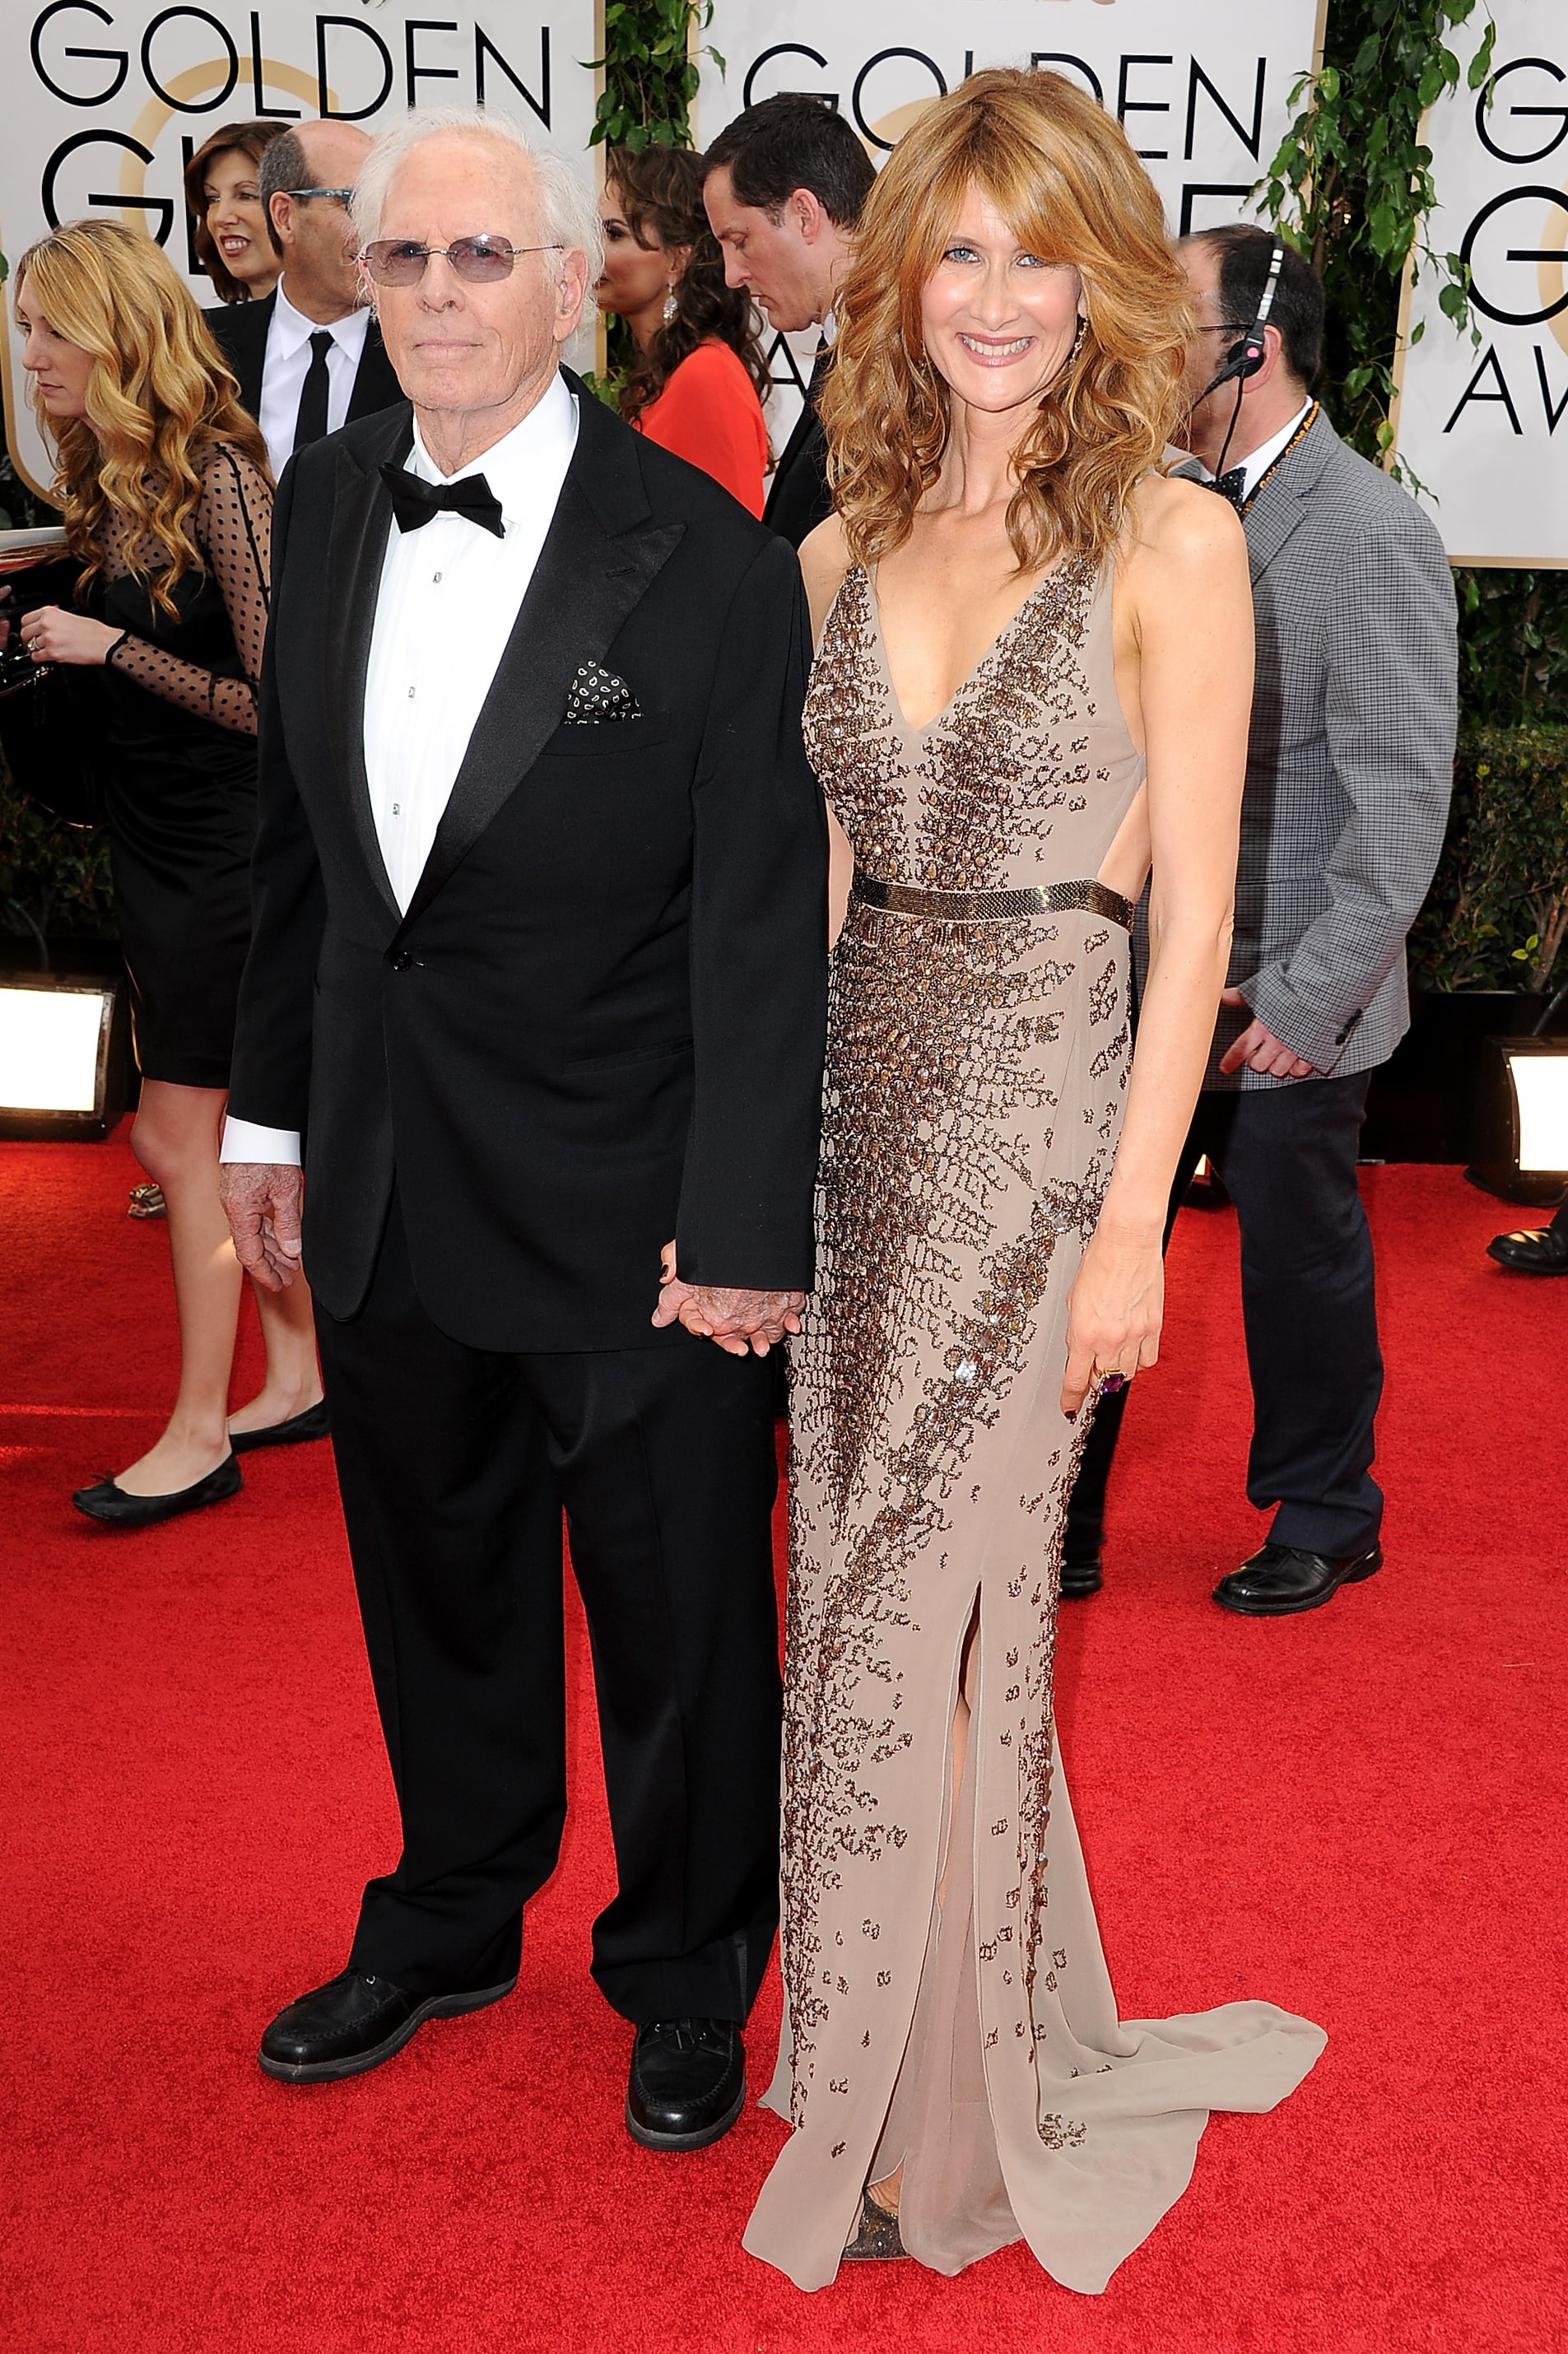 Laura Dern not only arrived at the Golden Globes alongside her father, Bruce, but she also hit the stage to present his nominated film, Nebraska.